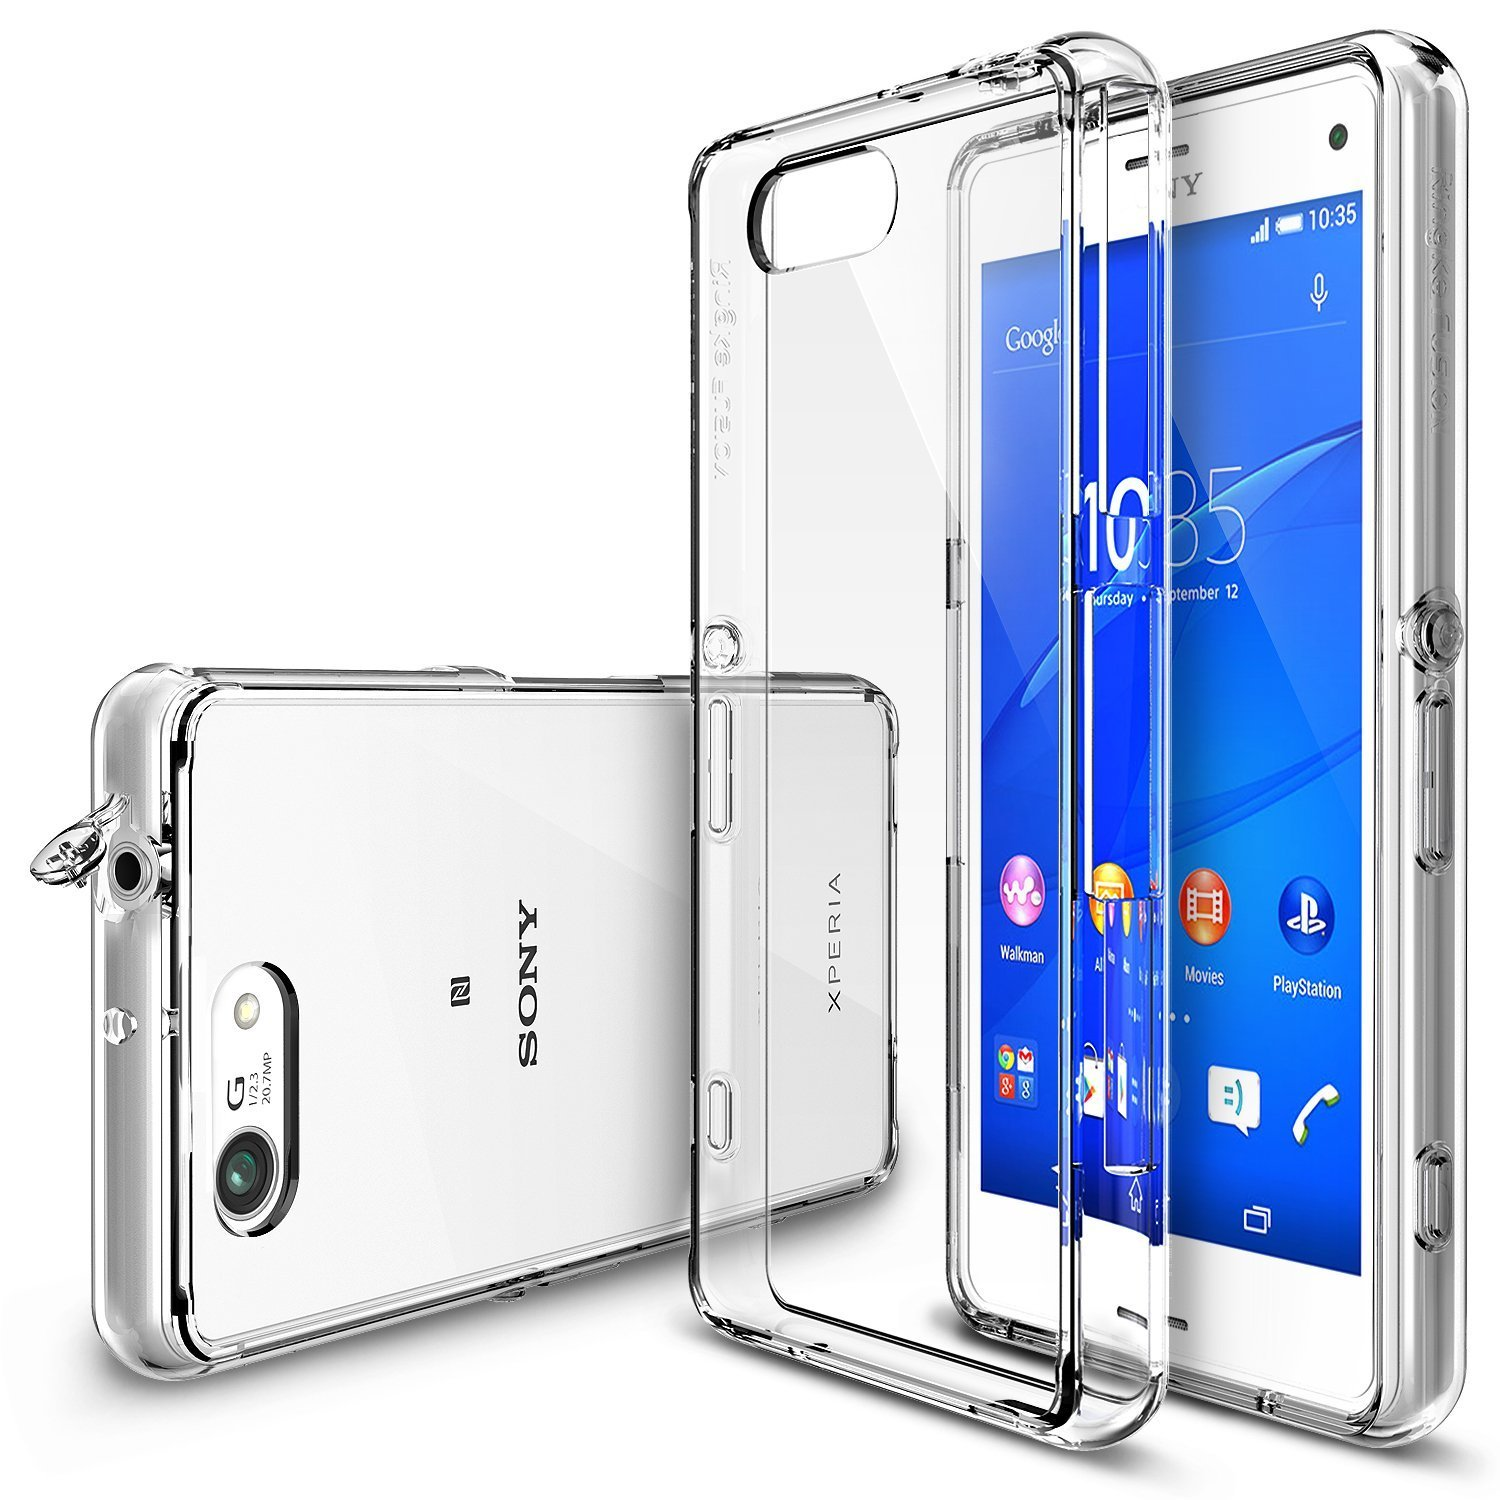 Xperia Z3 Compact Case Ringke Fusion Free Hd Film Dust Capdrop Seken Protectioncrystal View Shock Absorption Bumper Premium Hard For Sony